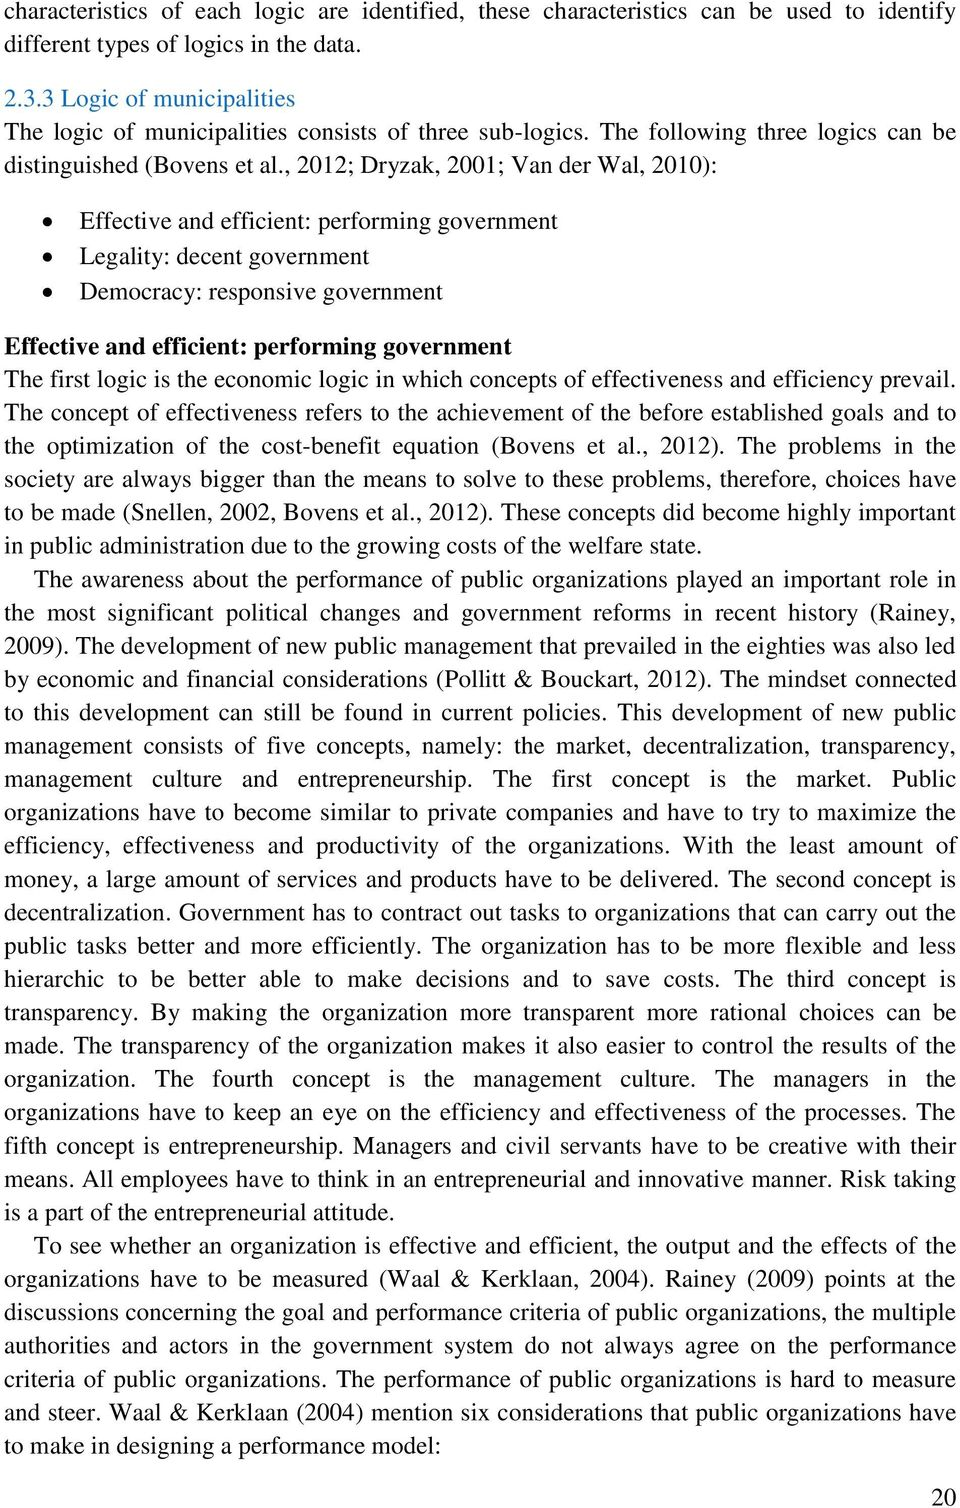 , 2012; Dryzak, 2001; Van der Wal, 2010): Effective and efficient: performing government Legality: decent government Democracy: responsive government Effective and efficient: performing government